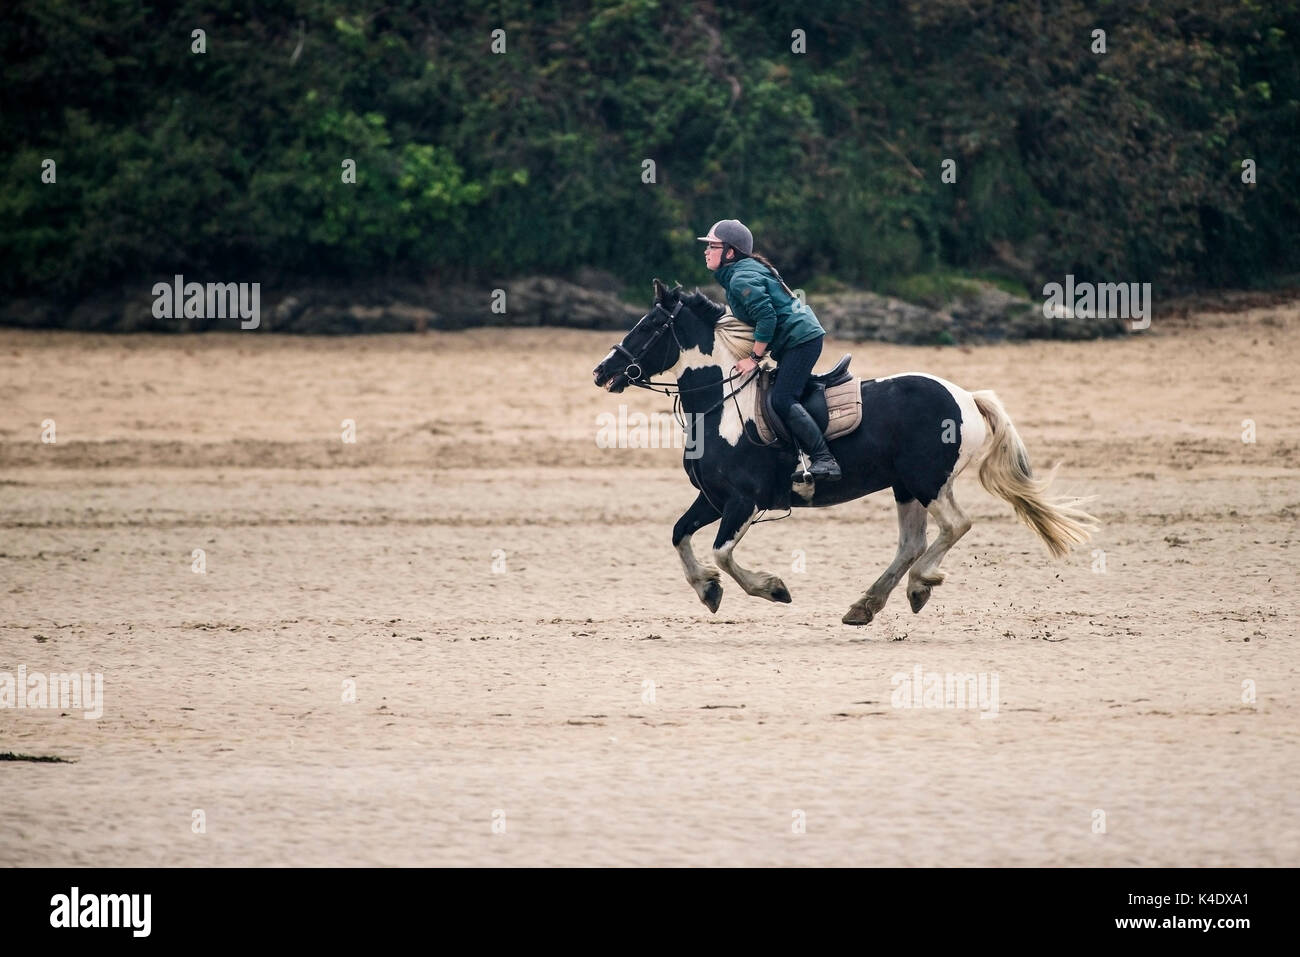 Gannel Estuary - a horserider riding along the exposed river bed at low tide on the Gannel River in Newquay, Cornwall. Stock Photo